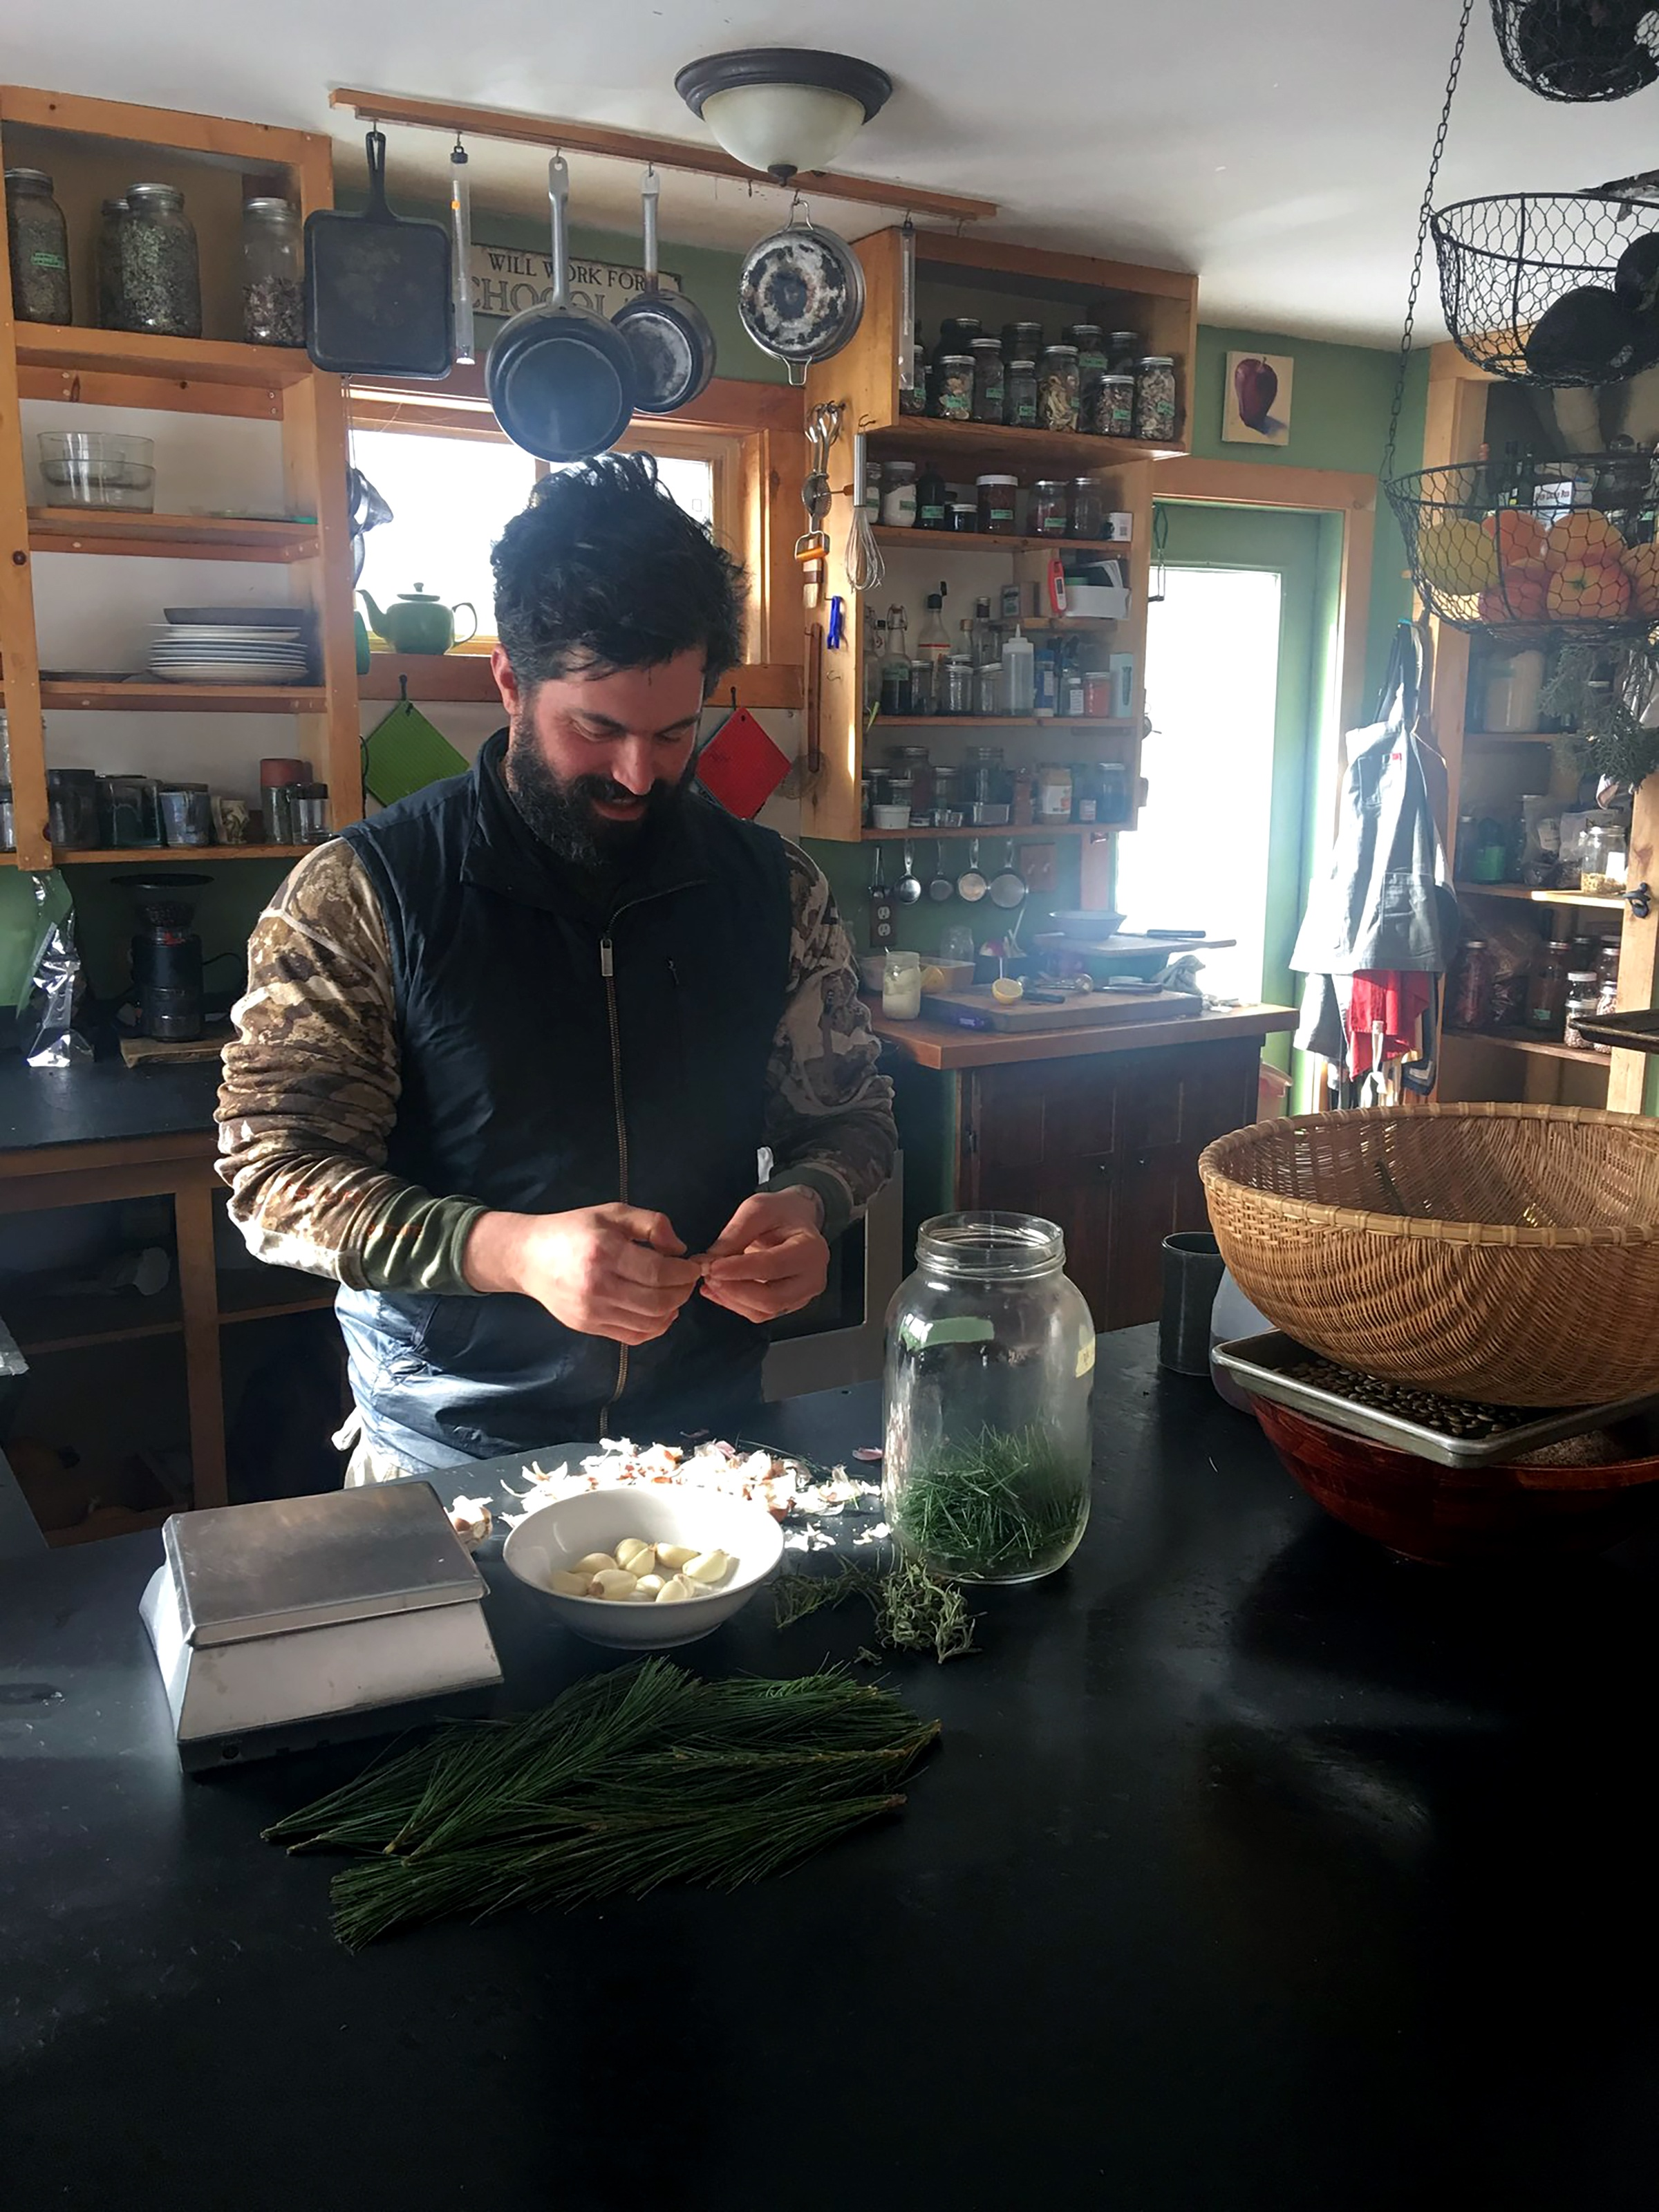 Bearded man in warm, rustic home kitchen making a preparation with fresh herbs